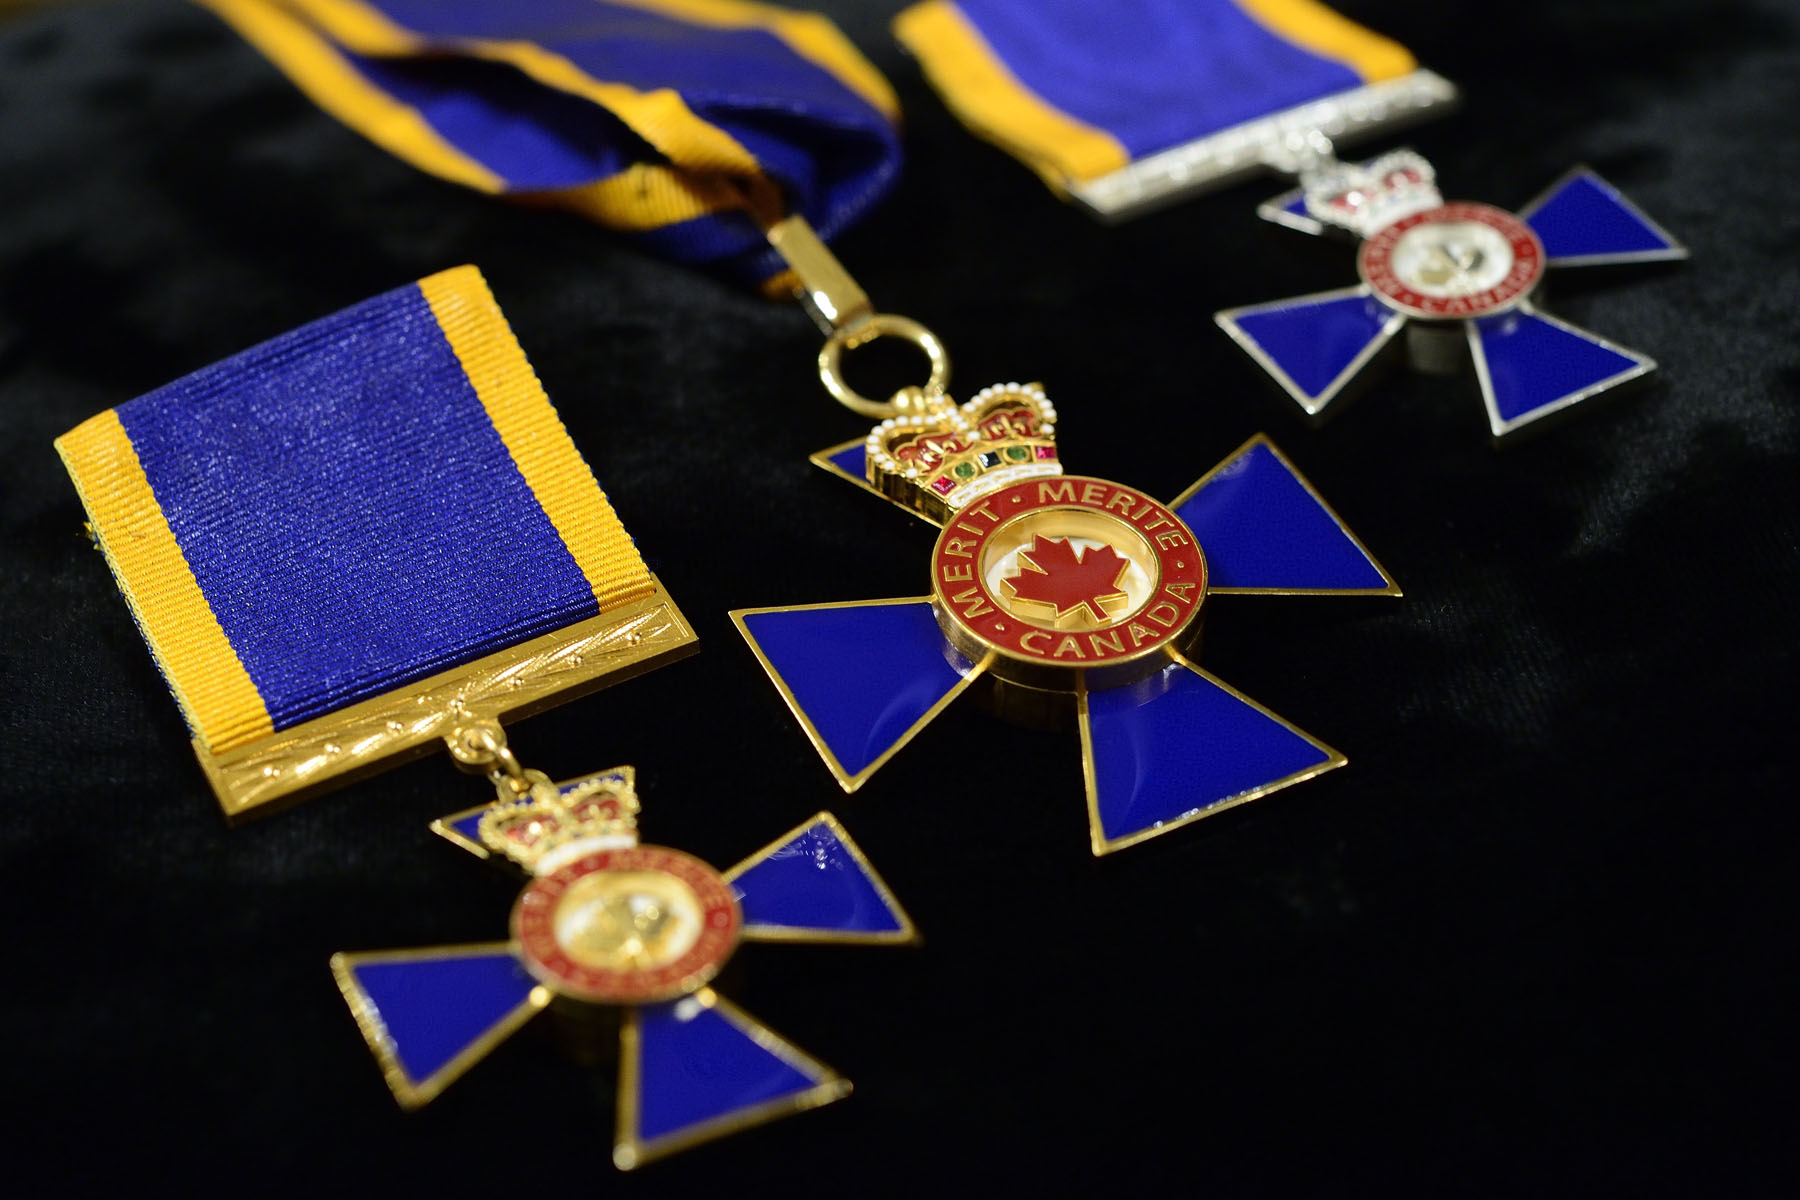 The Governor General and Commander-in-Chief of Canada, presided over an Order of Military Merit investiture ceremony at Rideau Hall, on March 6, 2017.